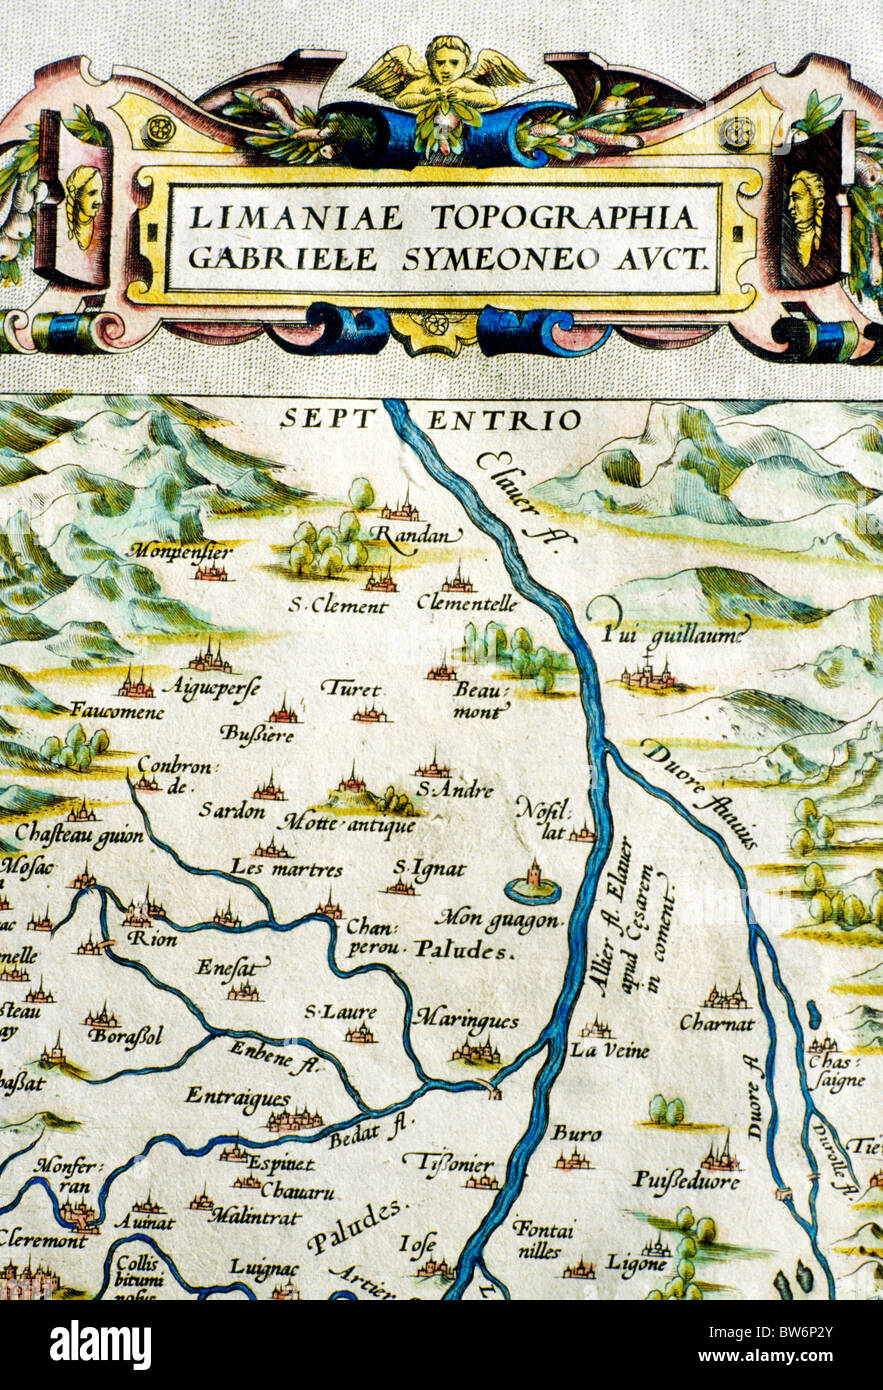 Theatrum Orbis Terrarum, 1570 by Abraham Ortelius, detail of Auvergne, France ancient World Atlas cartography old - Stock Image